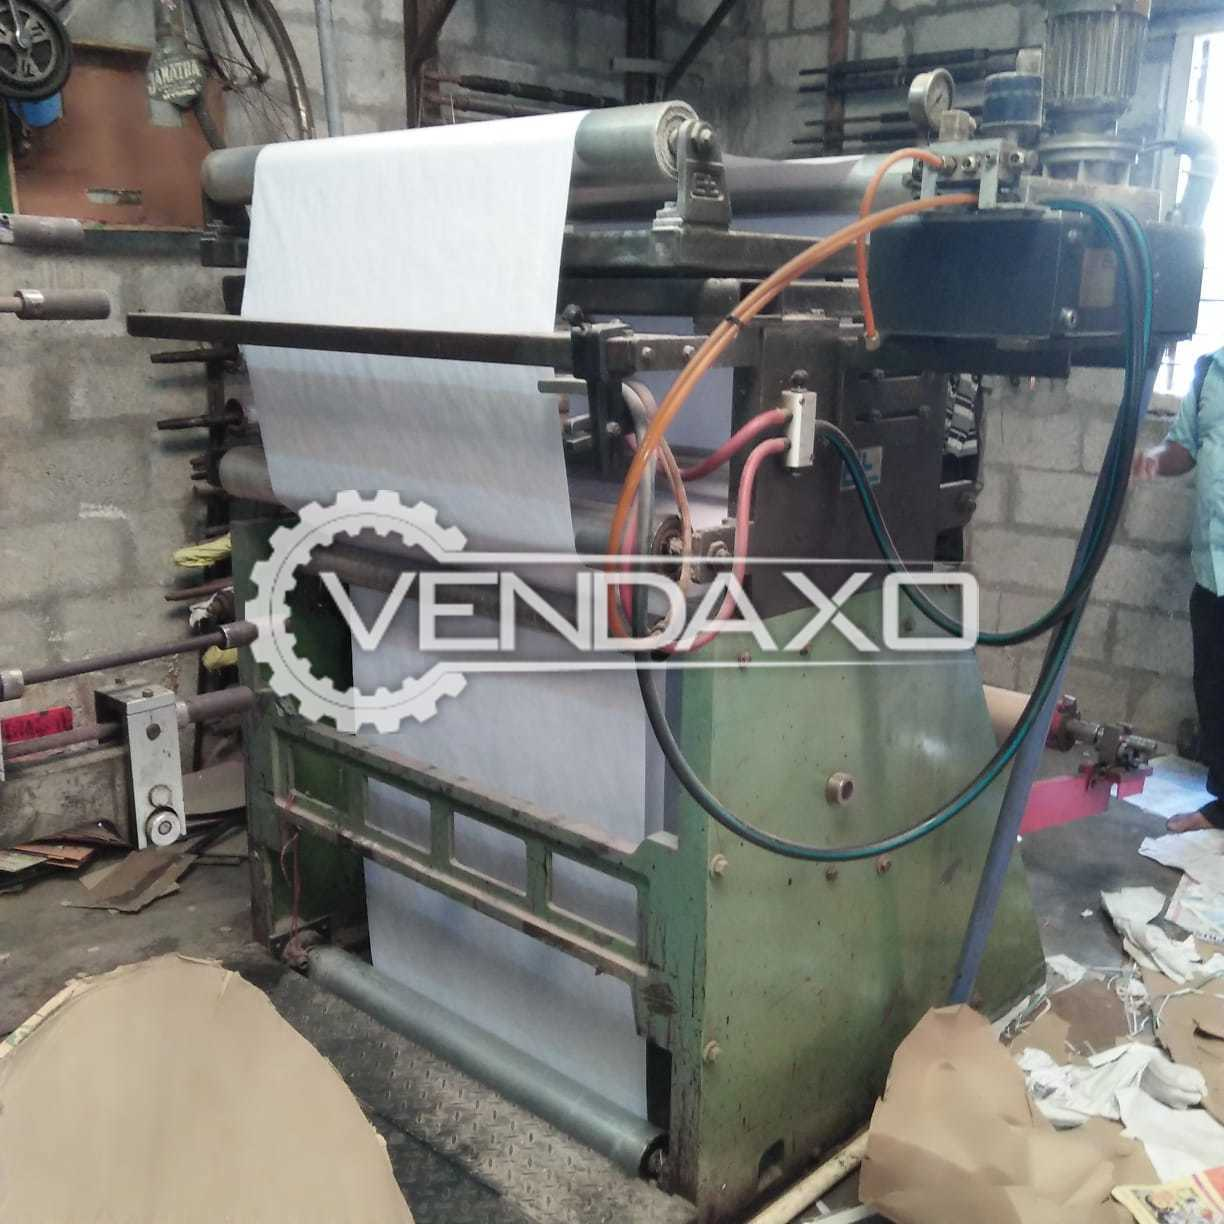 Line O Matic Flexo Printing Machine - 4 Color